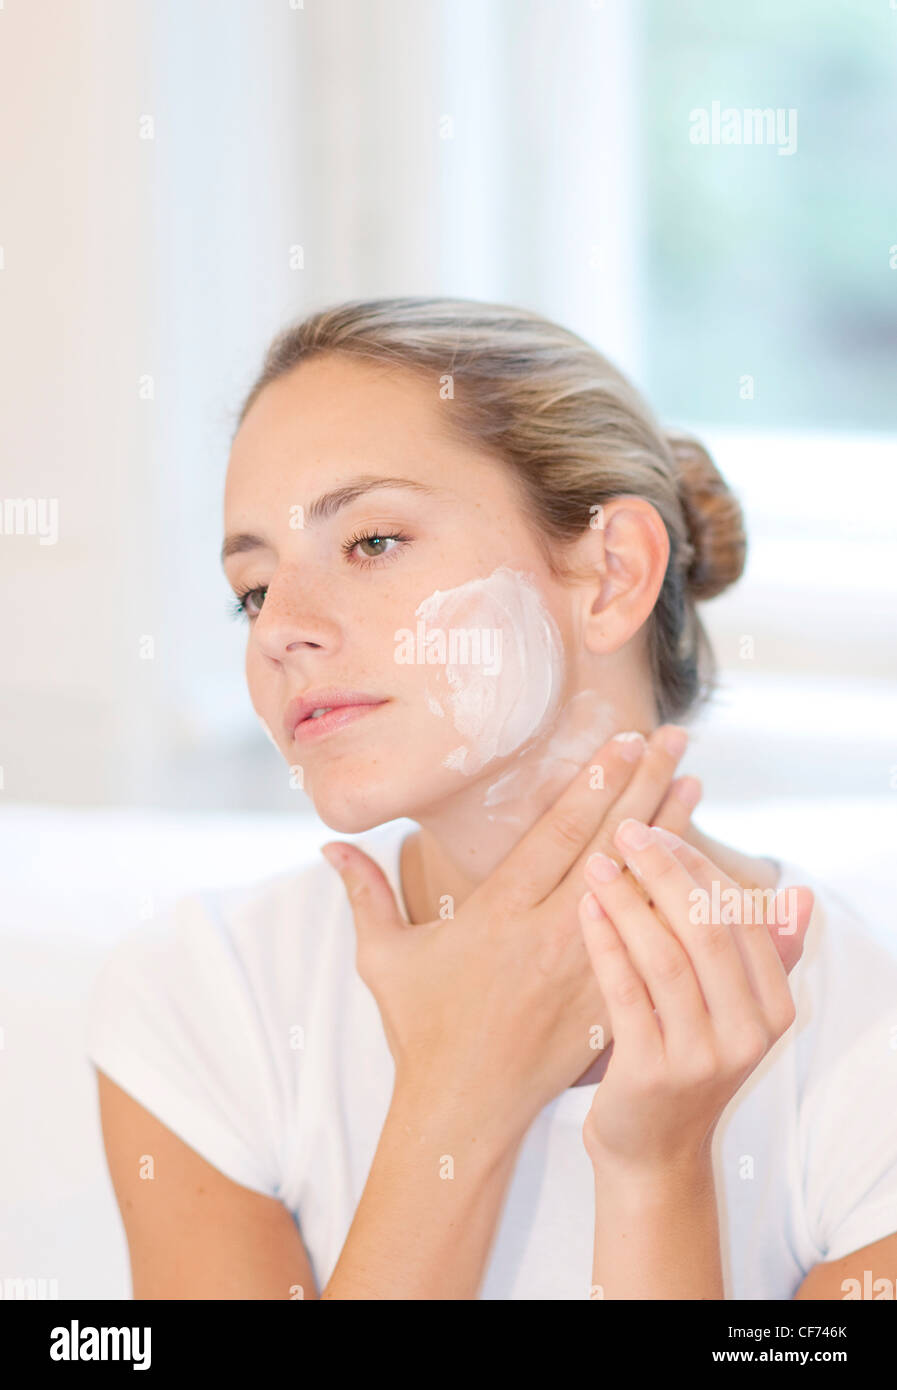 Female highlighted fair hair off her face, wearing a white t shirt, applying face cream to her cheeks and neck, - Stock Image